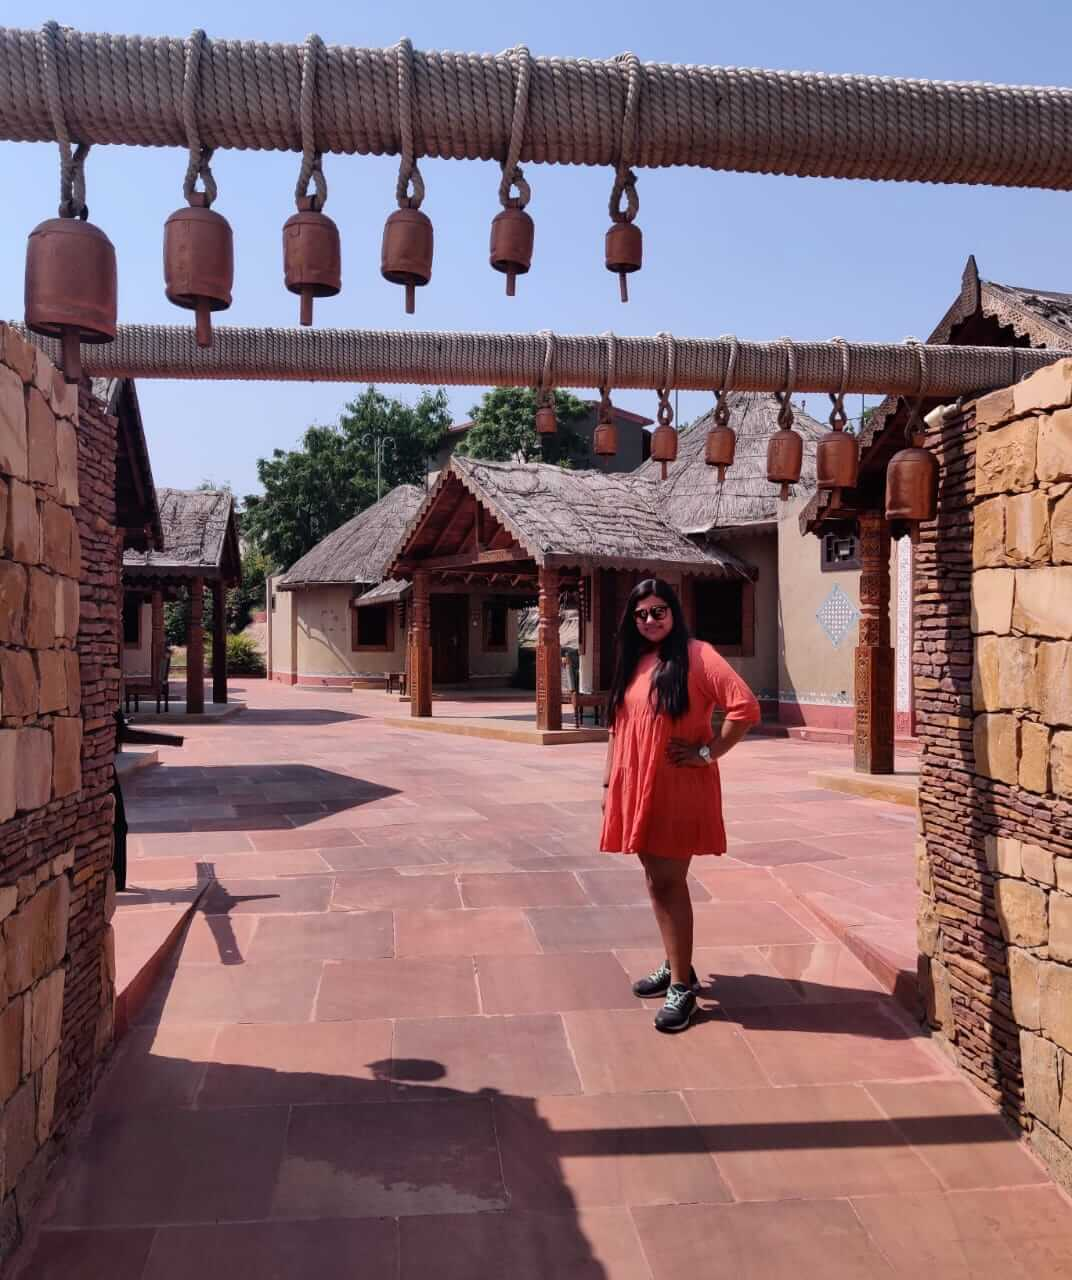 Heritage Huts at Regenta Resort, Bhuj